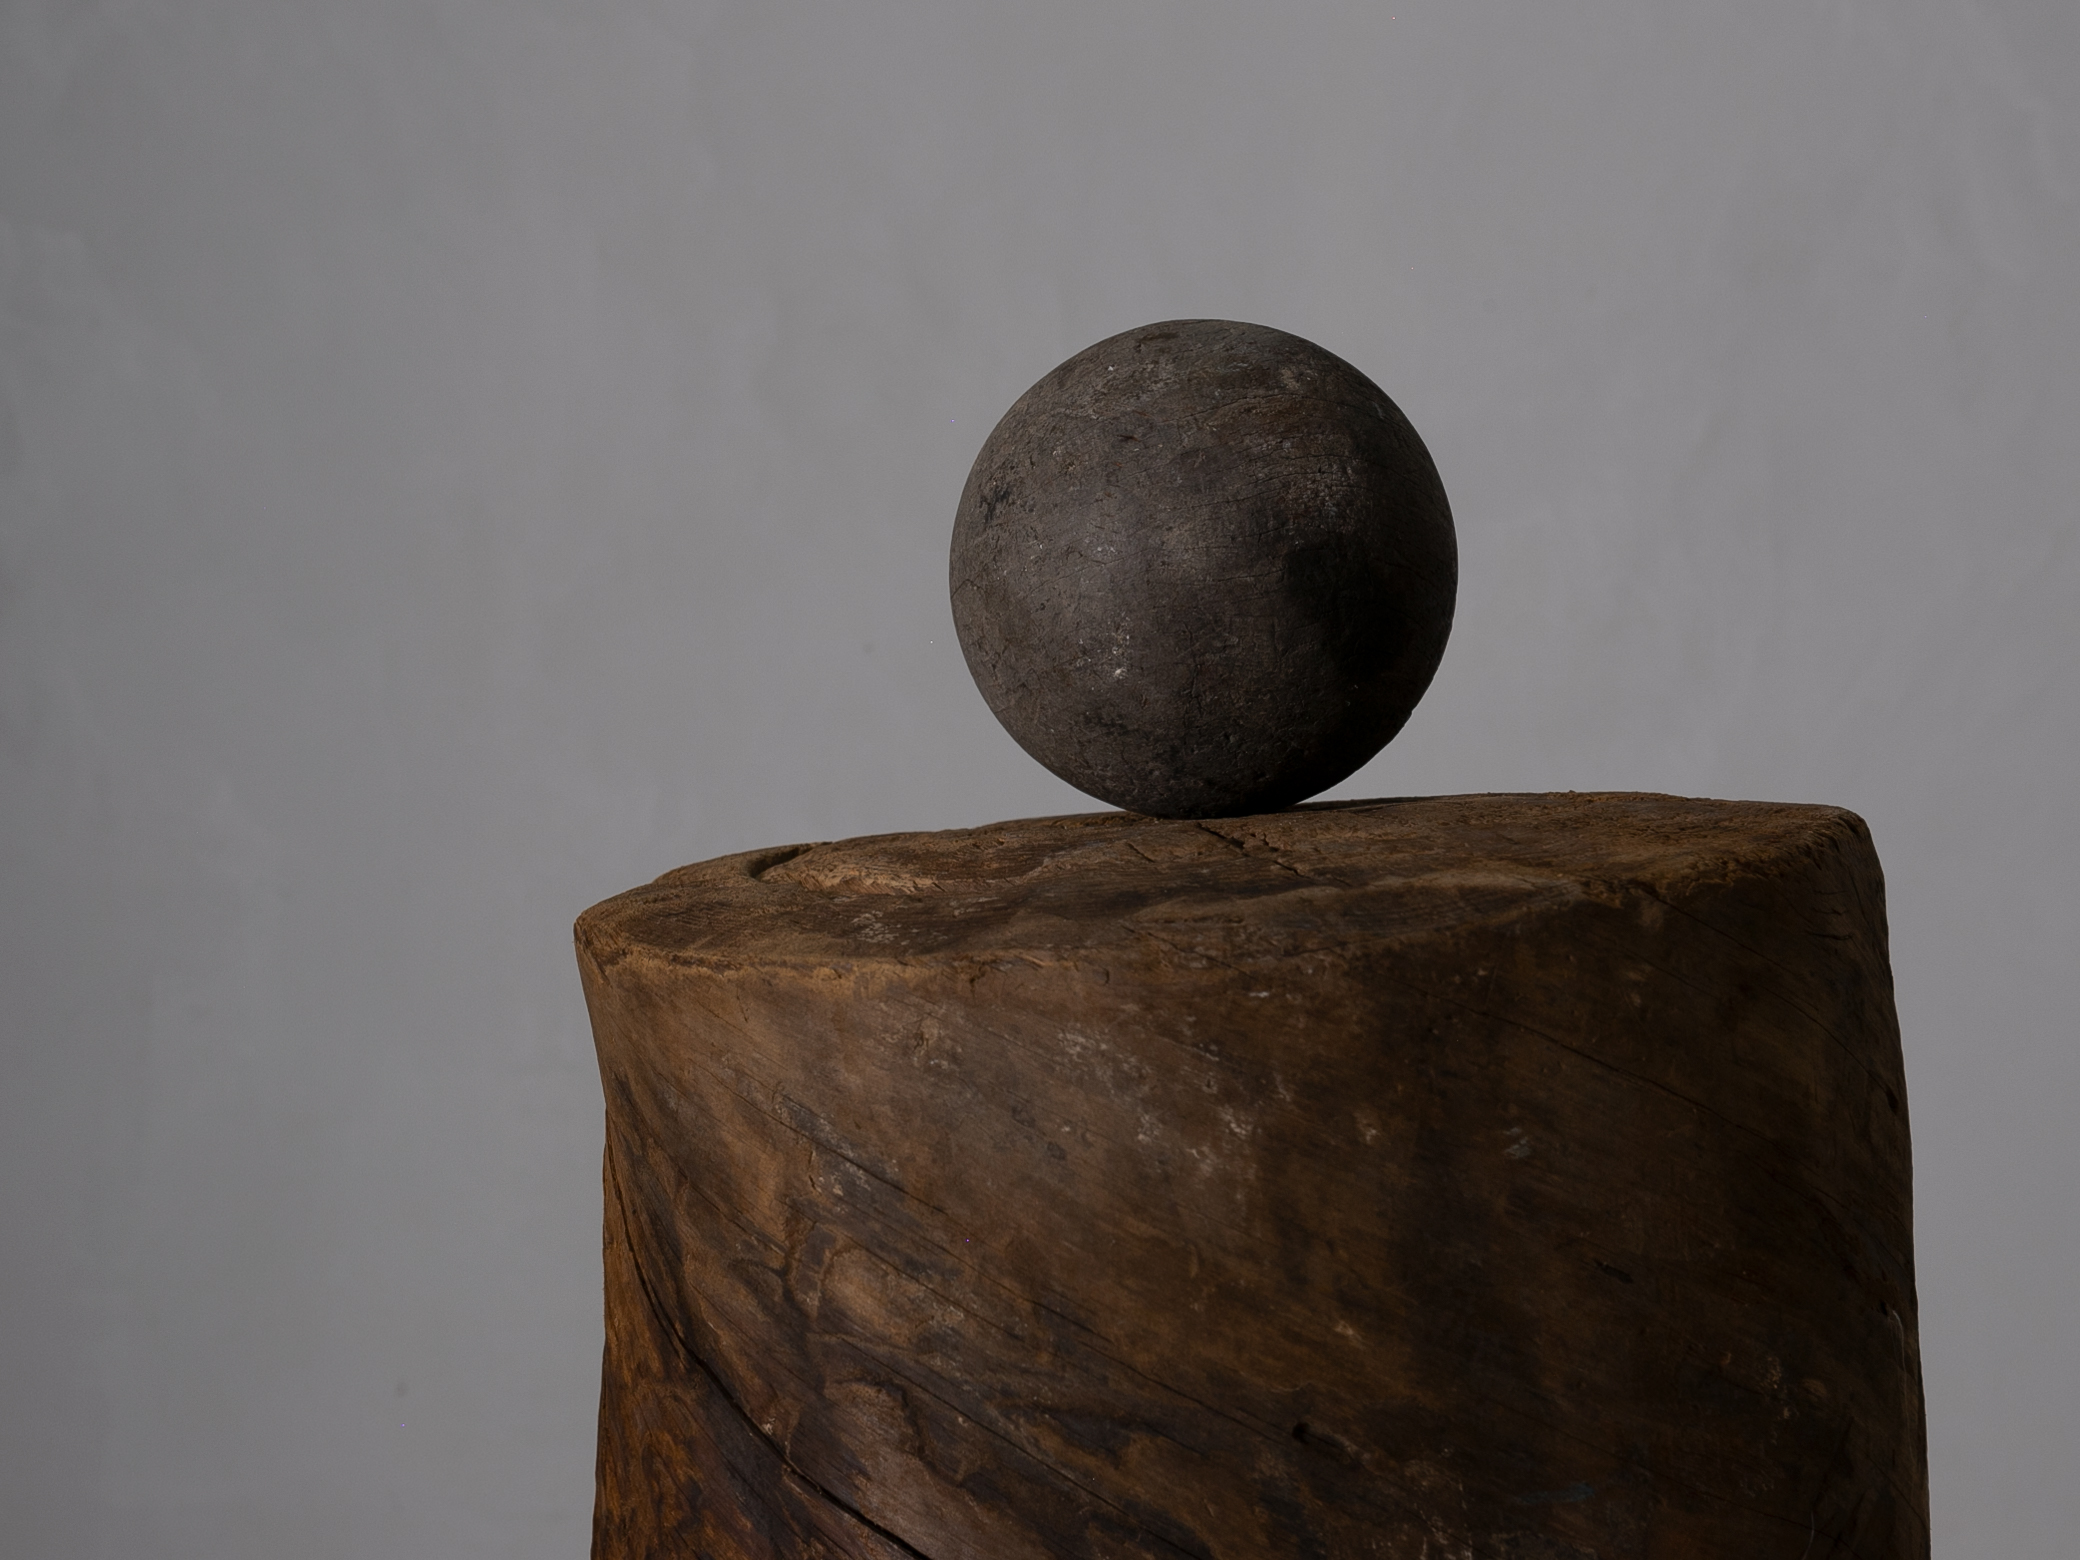 Wooden Small Ball I 木球